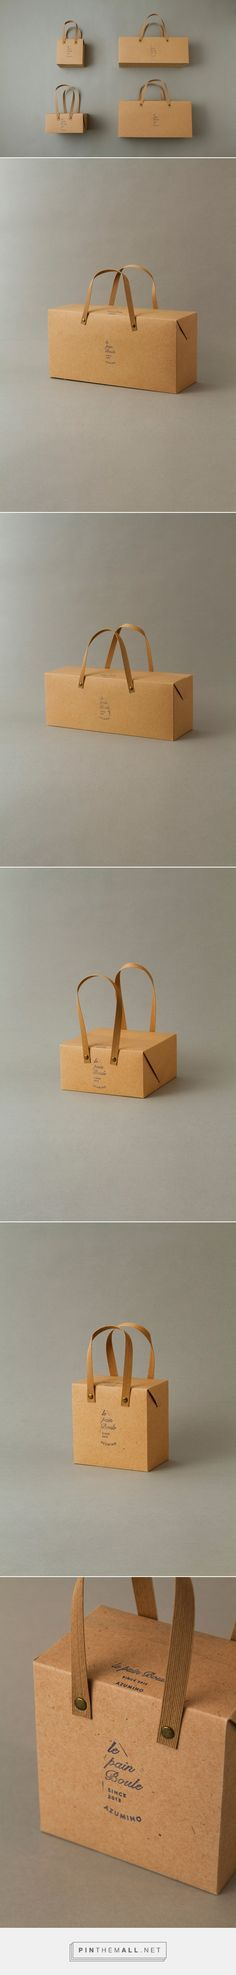 Artless Inc. le pain boule new gift box #packaging